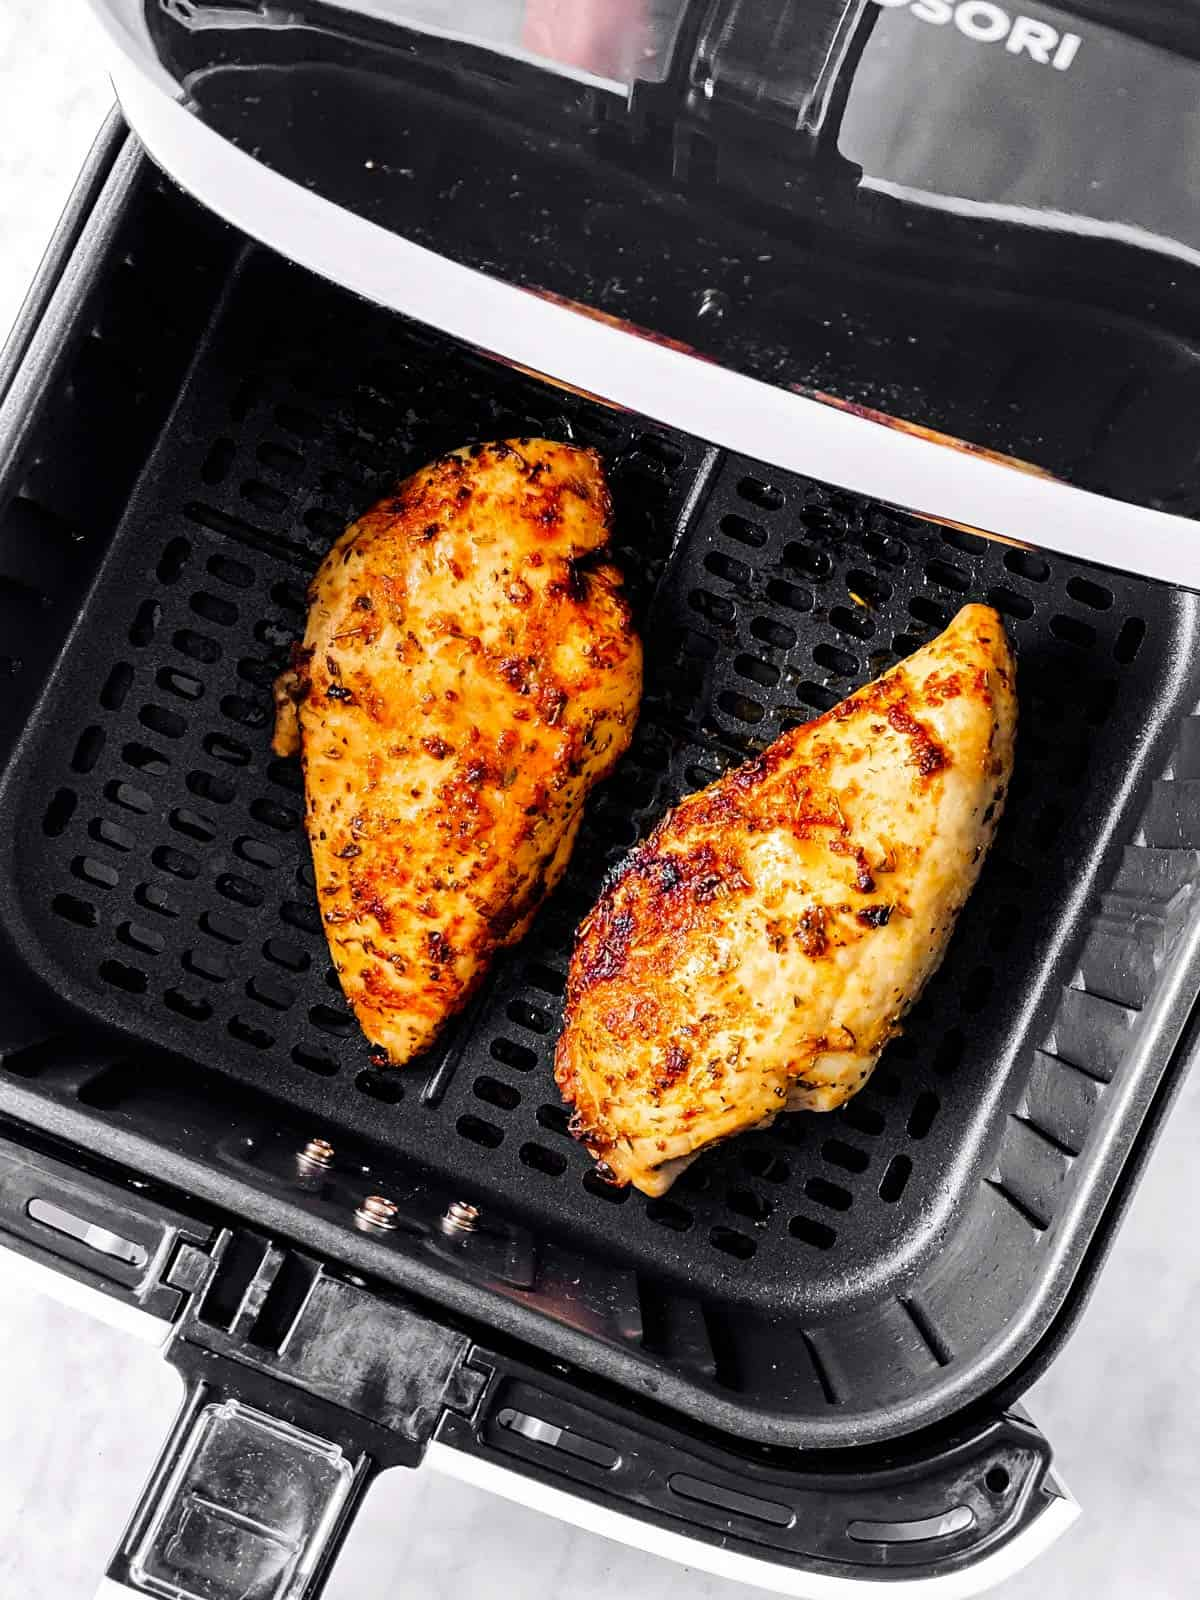 overhead view of air fryer basket with two cooked chicken breasts inside